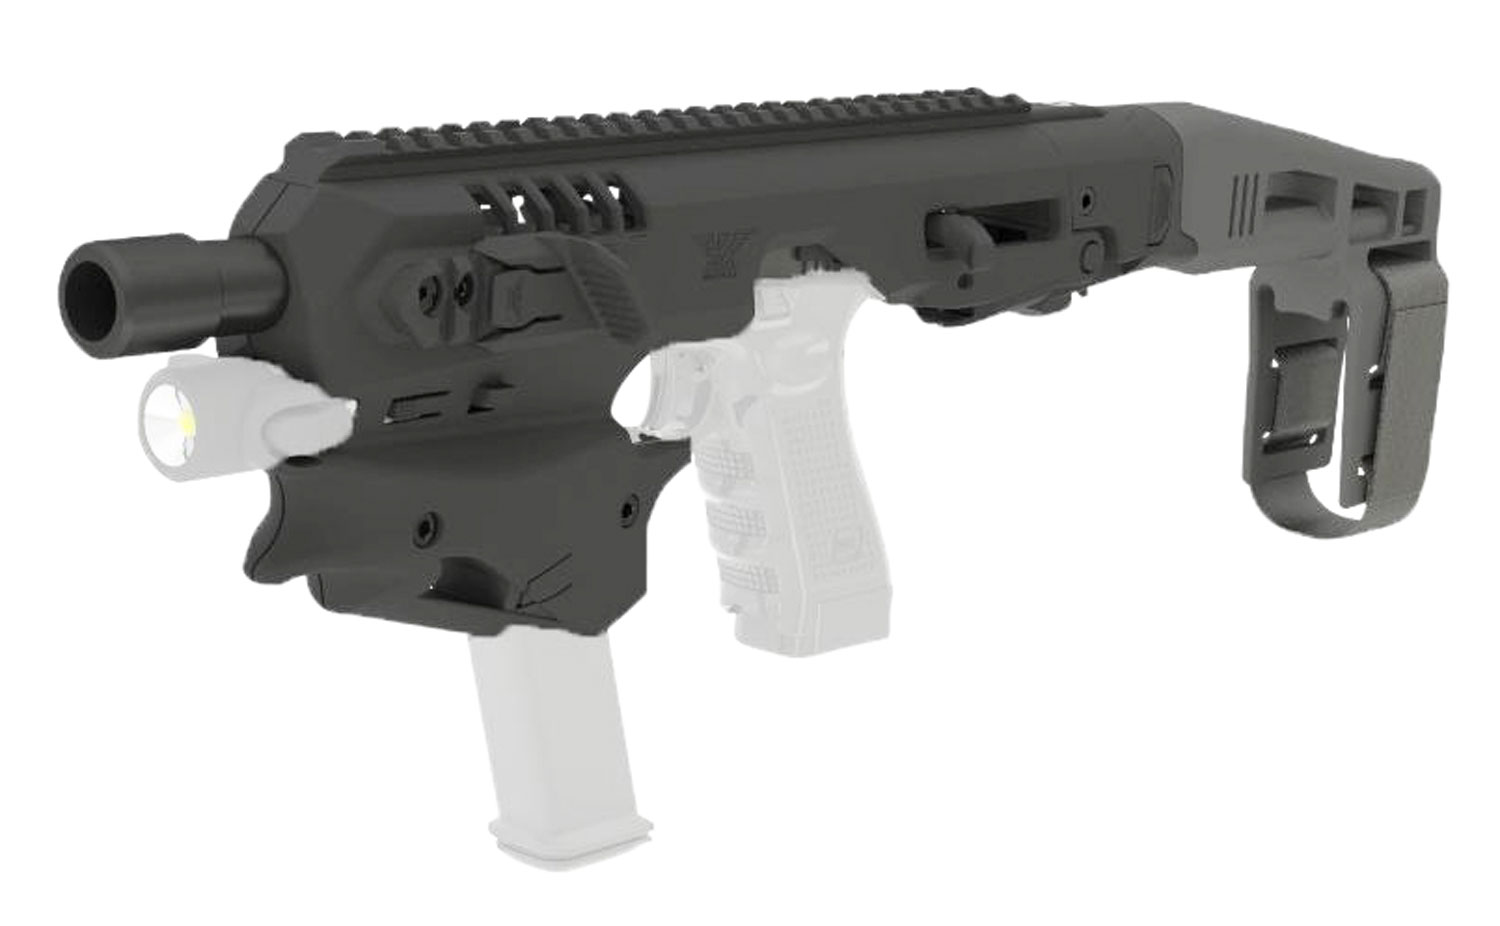 Command Arms MCK MCK Standard Conversion Kit Glock 17/19/19X/22/23/31/32/45 Gen3-5 Black Polymer Stock